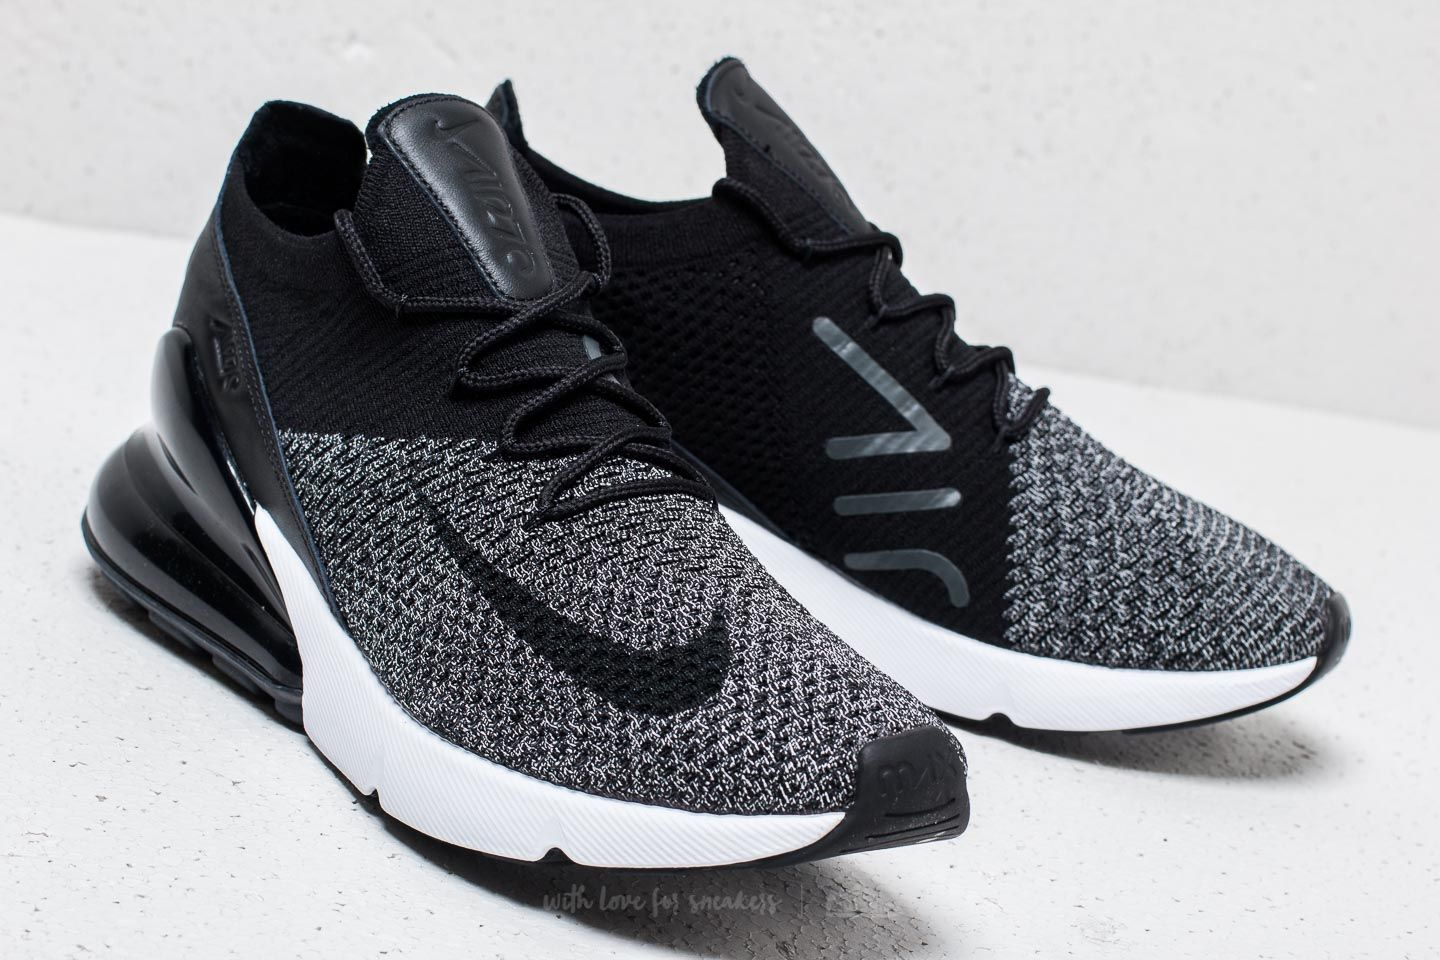 b4ddaf8c9972 Nike Air Max 270 Flyknit Black  Black-White in 2019